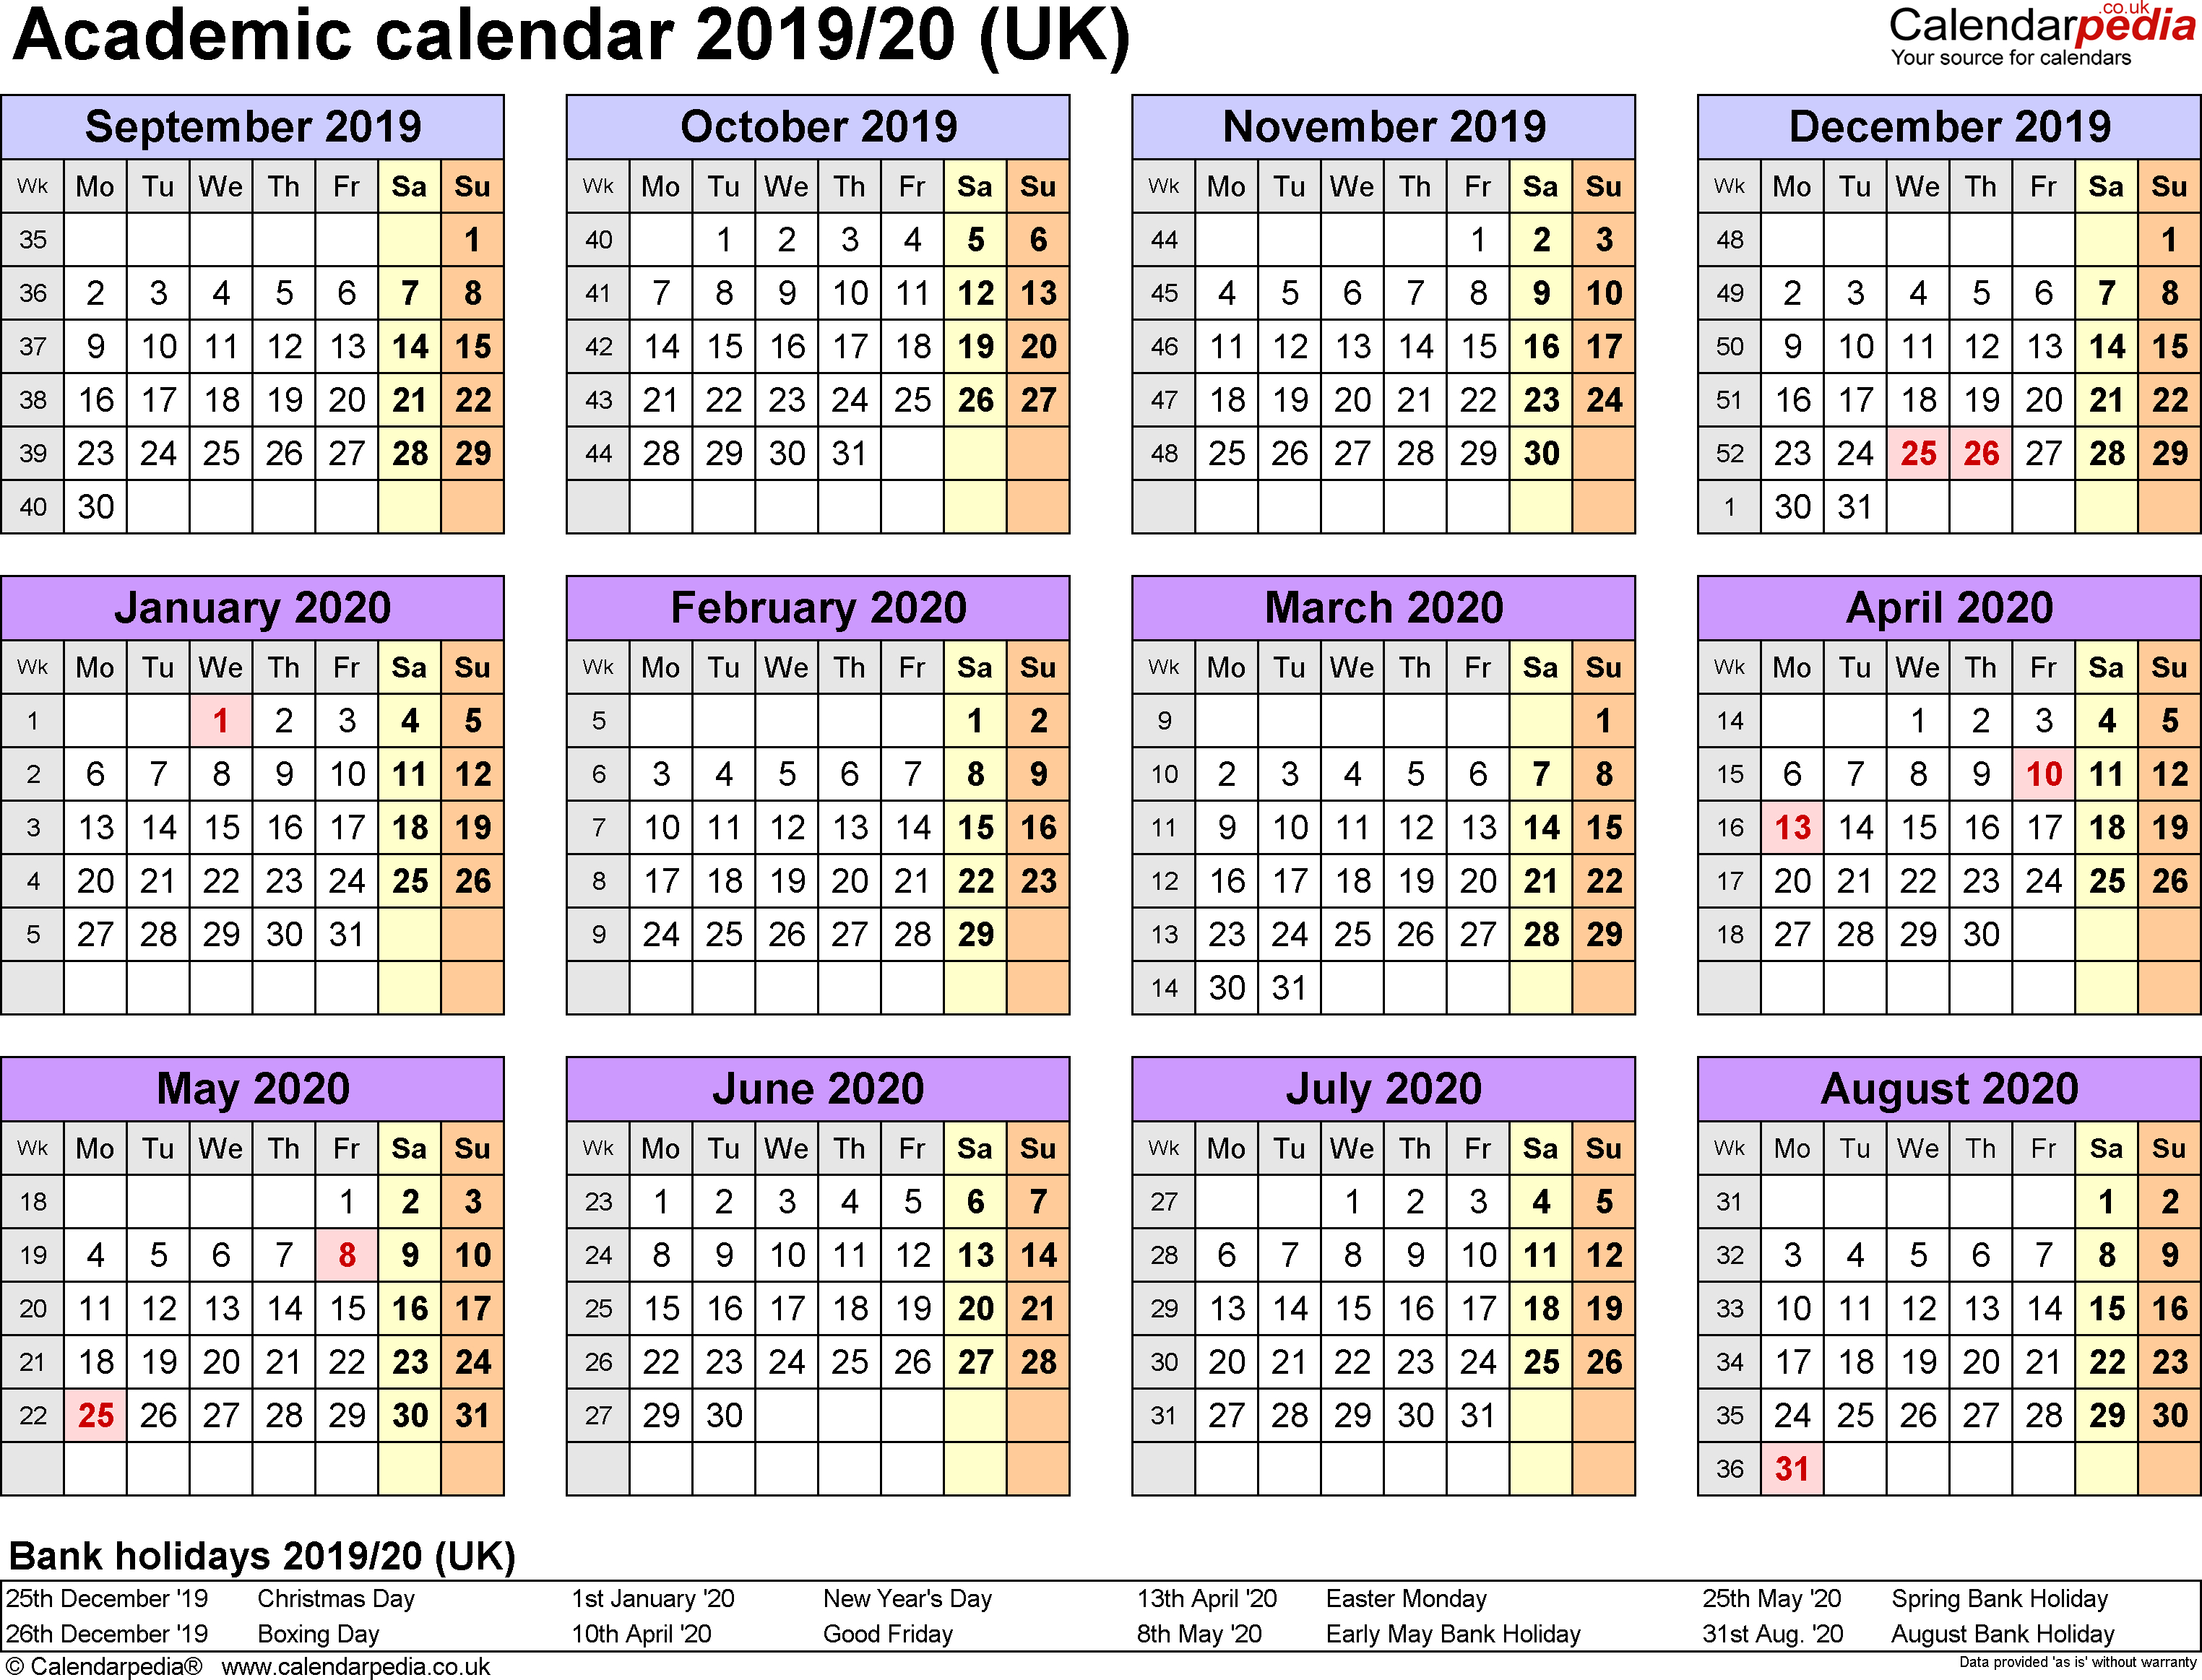 Academic Calendars 2019/2020 As Free Printable Word Templates U Of L Calendar 2019